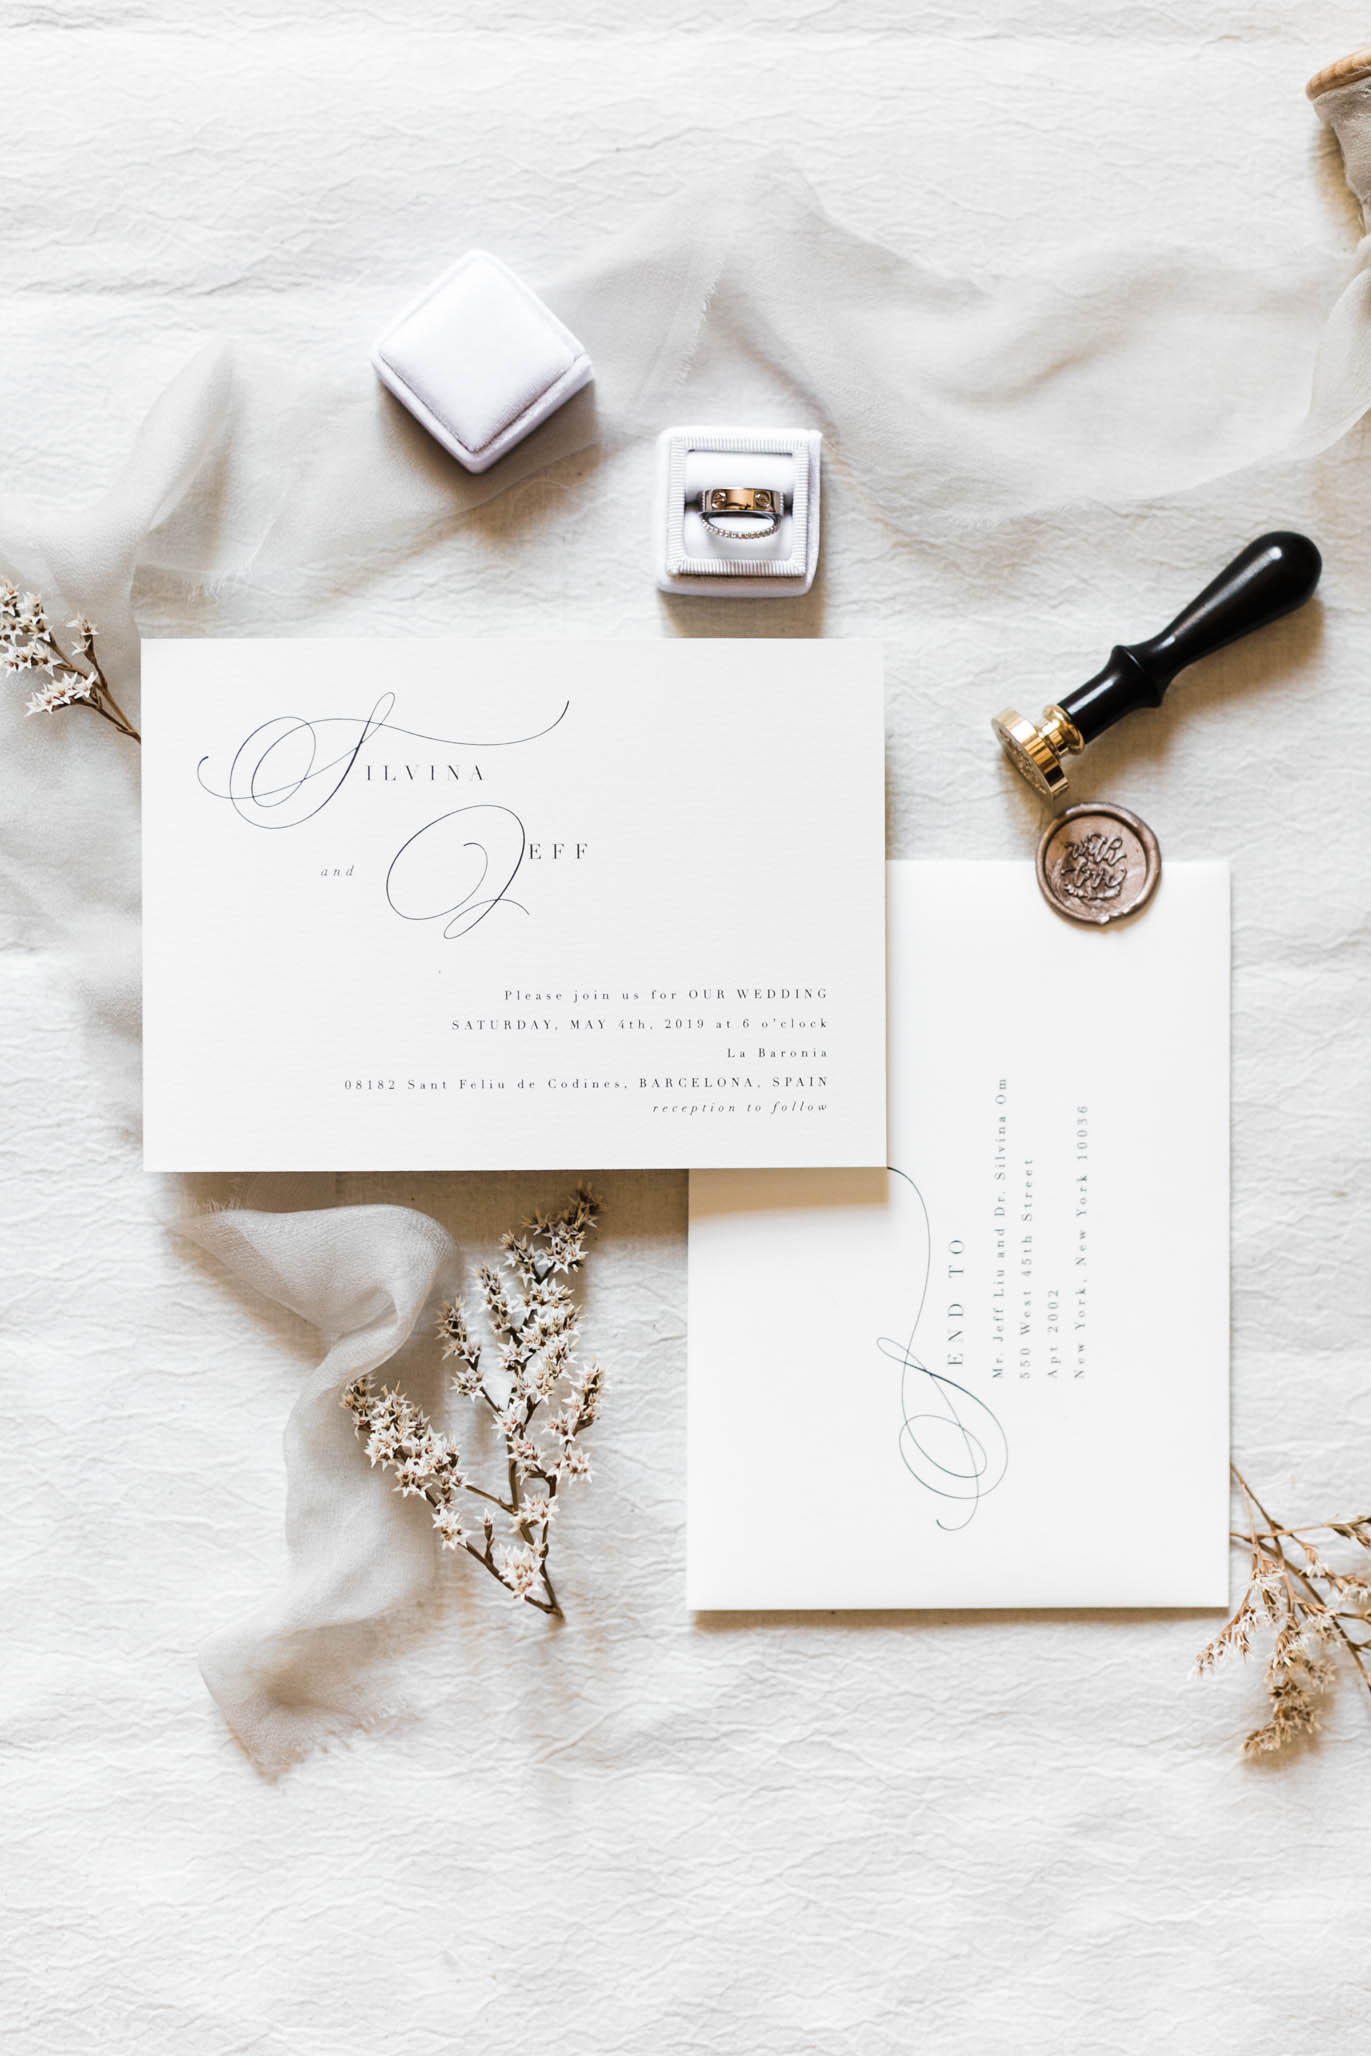 They went with pretty simple yet elegant invitations and I loved every bit of it.